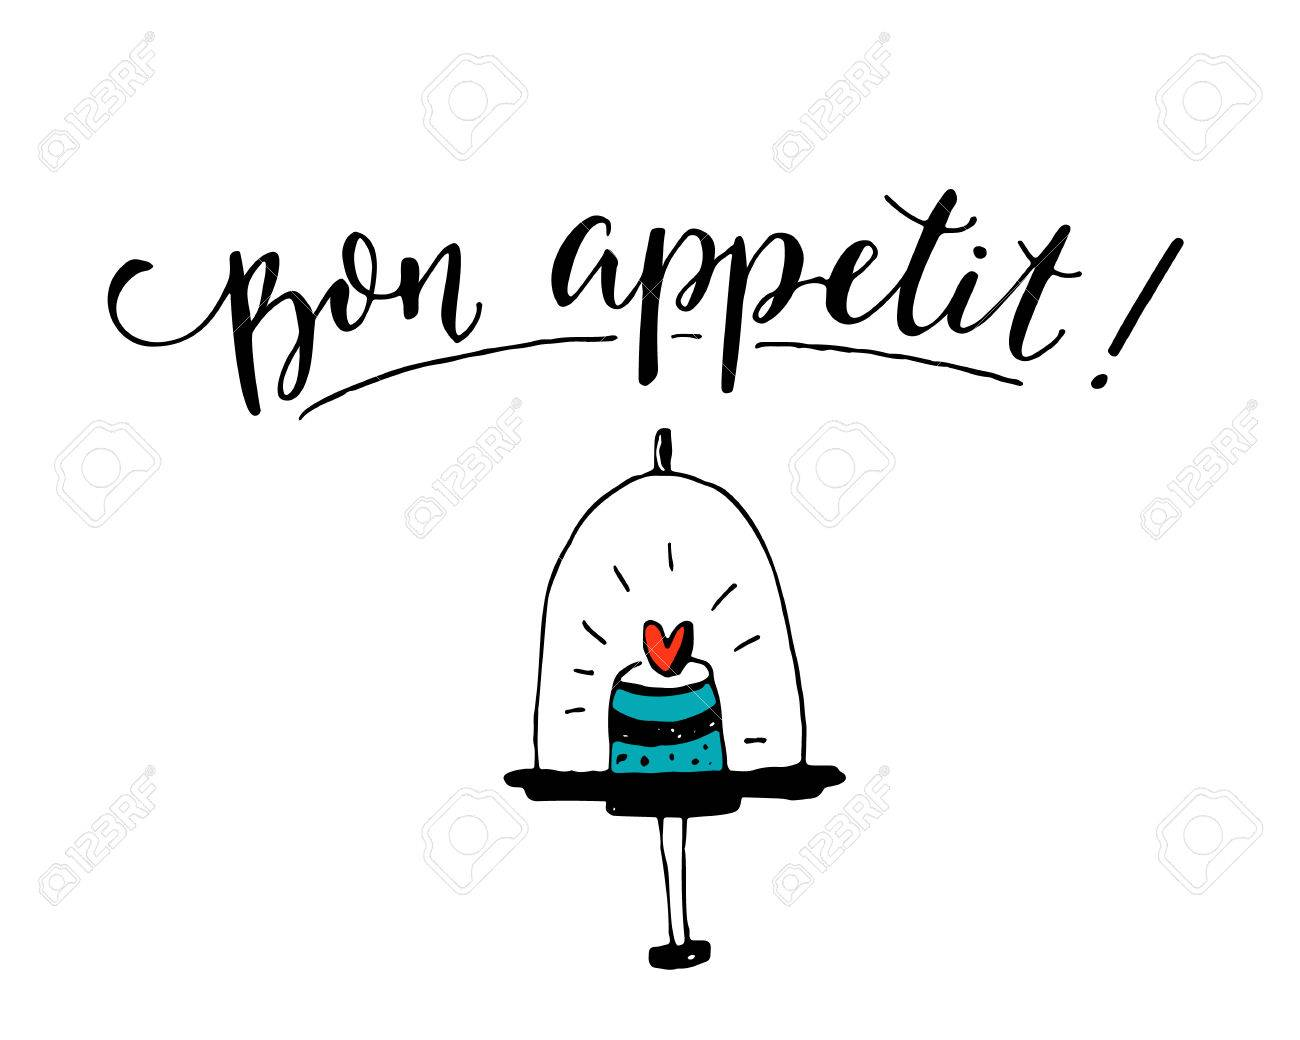 Bon Appetit Enjoy Your Meal In French Cafe Poster Design With Royalty Free Cliparts Vectors And Stock Illustration Image 84283138